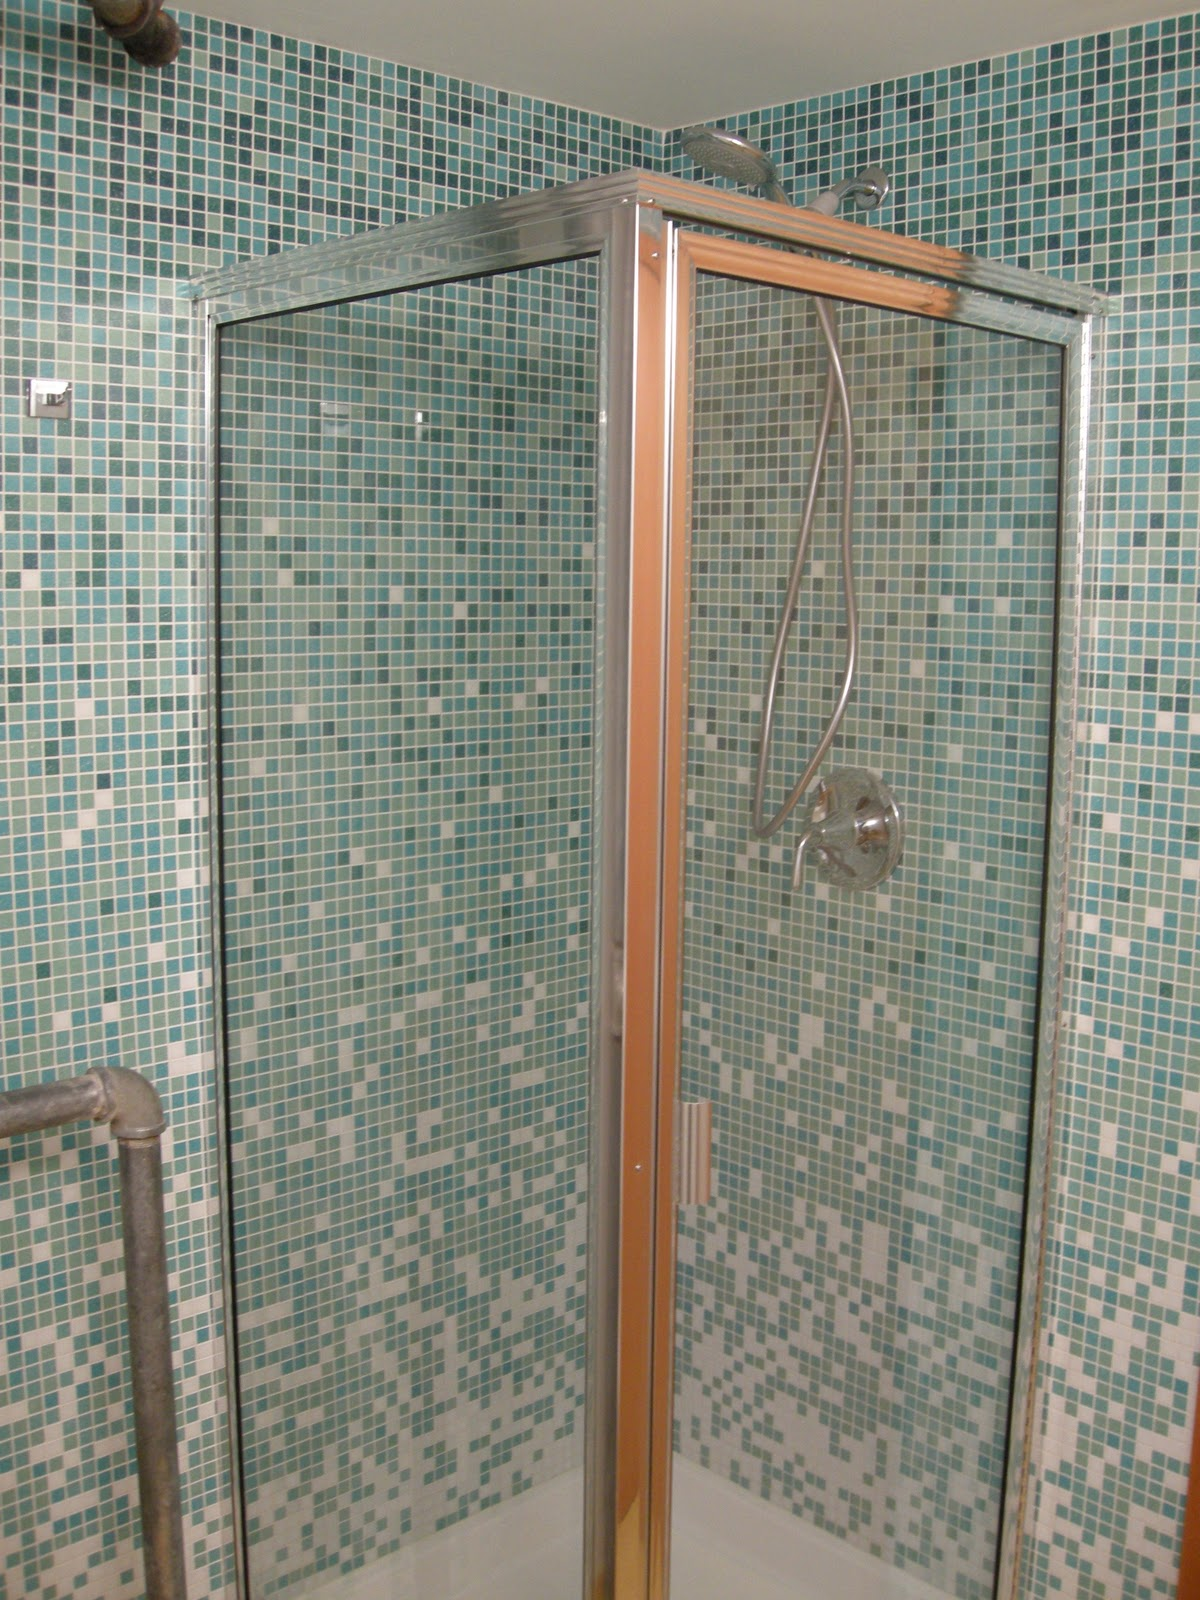 bathroom-inspiration-cool-blue-mosaic-wall-tiled-in-modern-small-space-bathroom-decors-with-amazing-showers-wall-as-well-as-glass-shower-cubicle-ideas-amazing-showers-and-tubs-astonishing-ideas-and-a